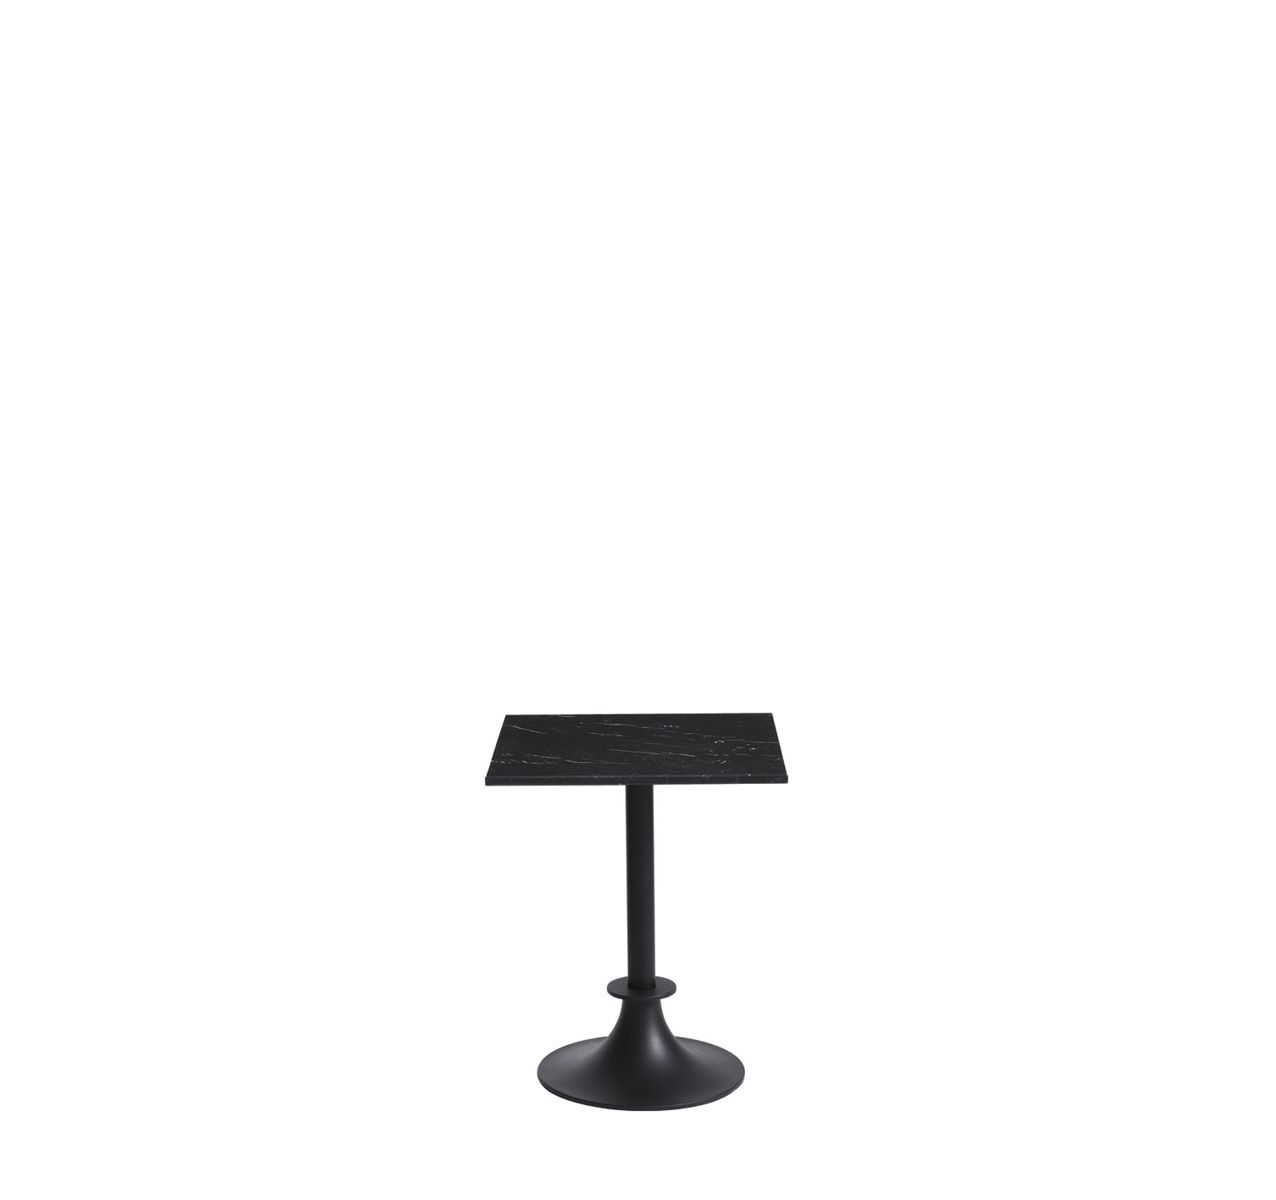 Lord Yi Square Table Black Marquina Marble, No